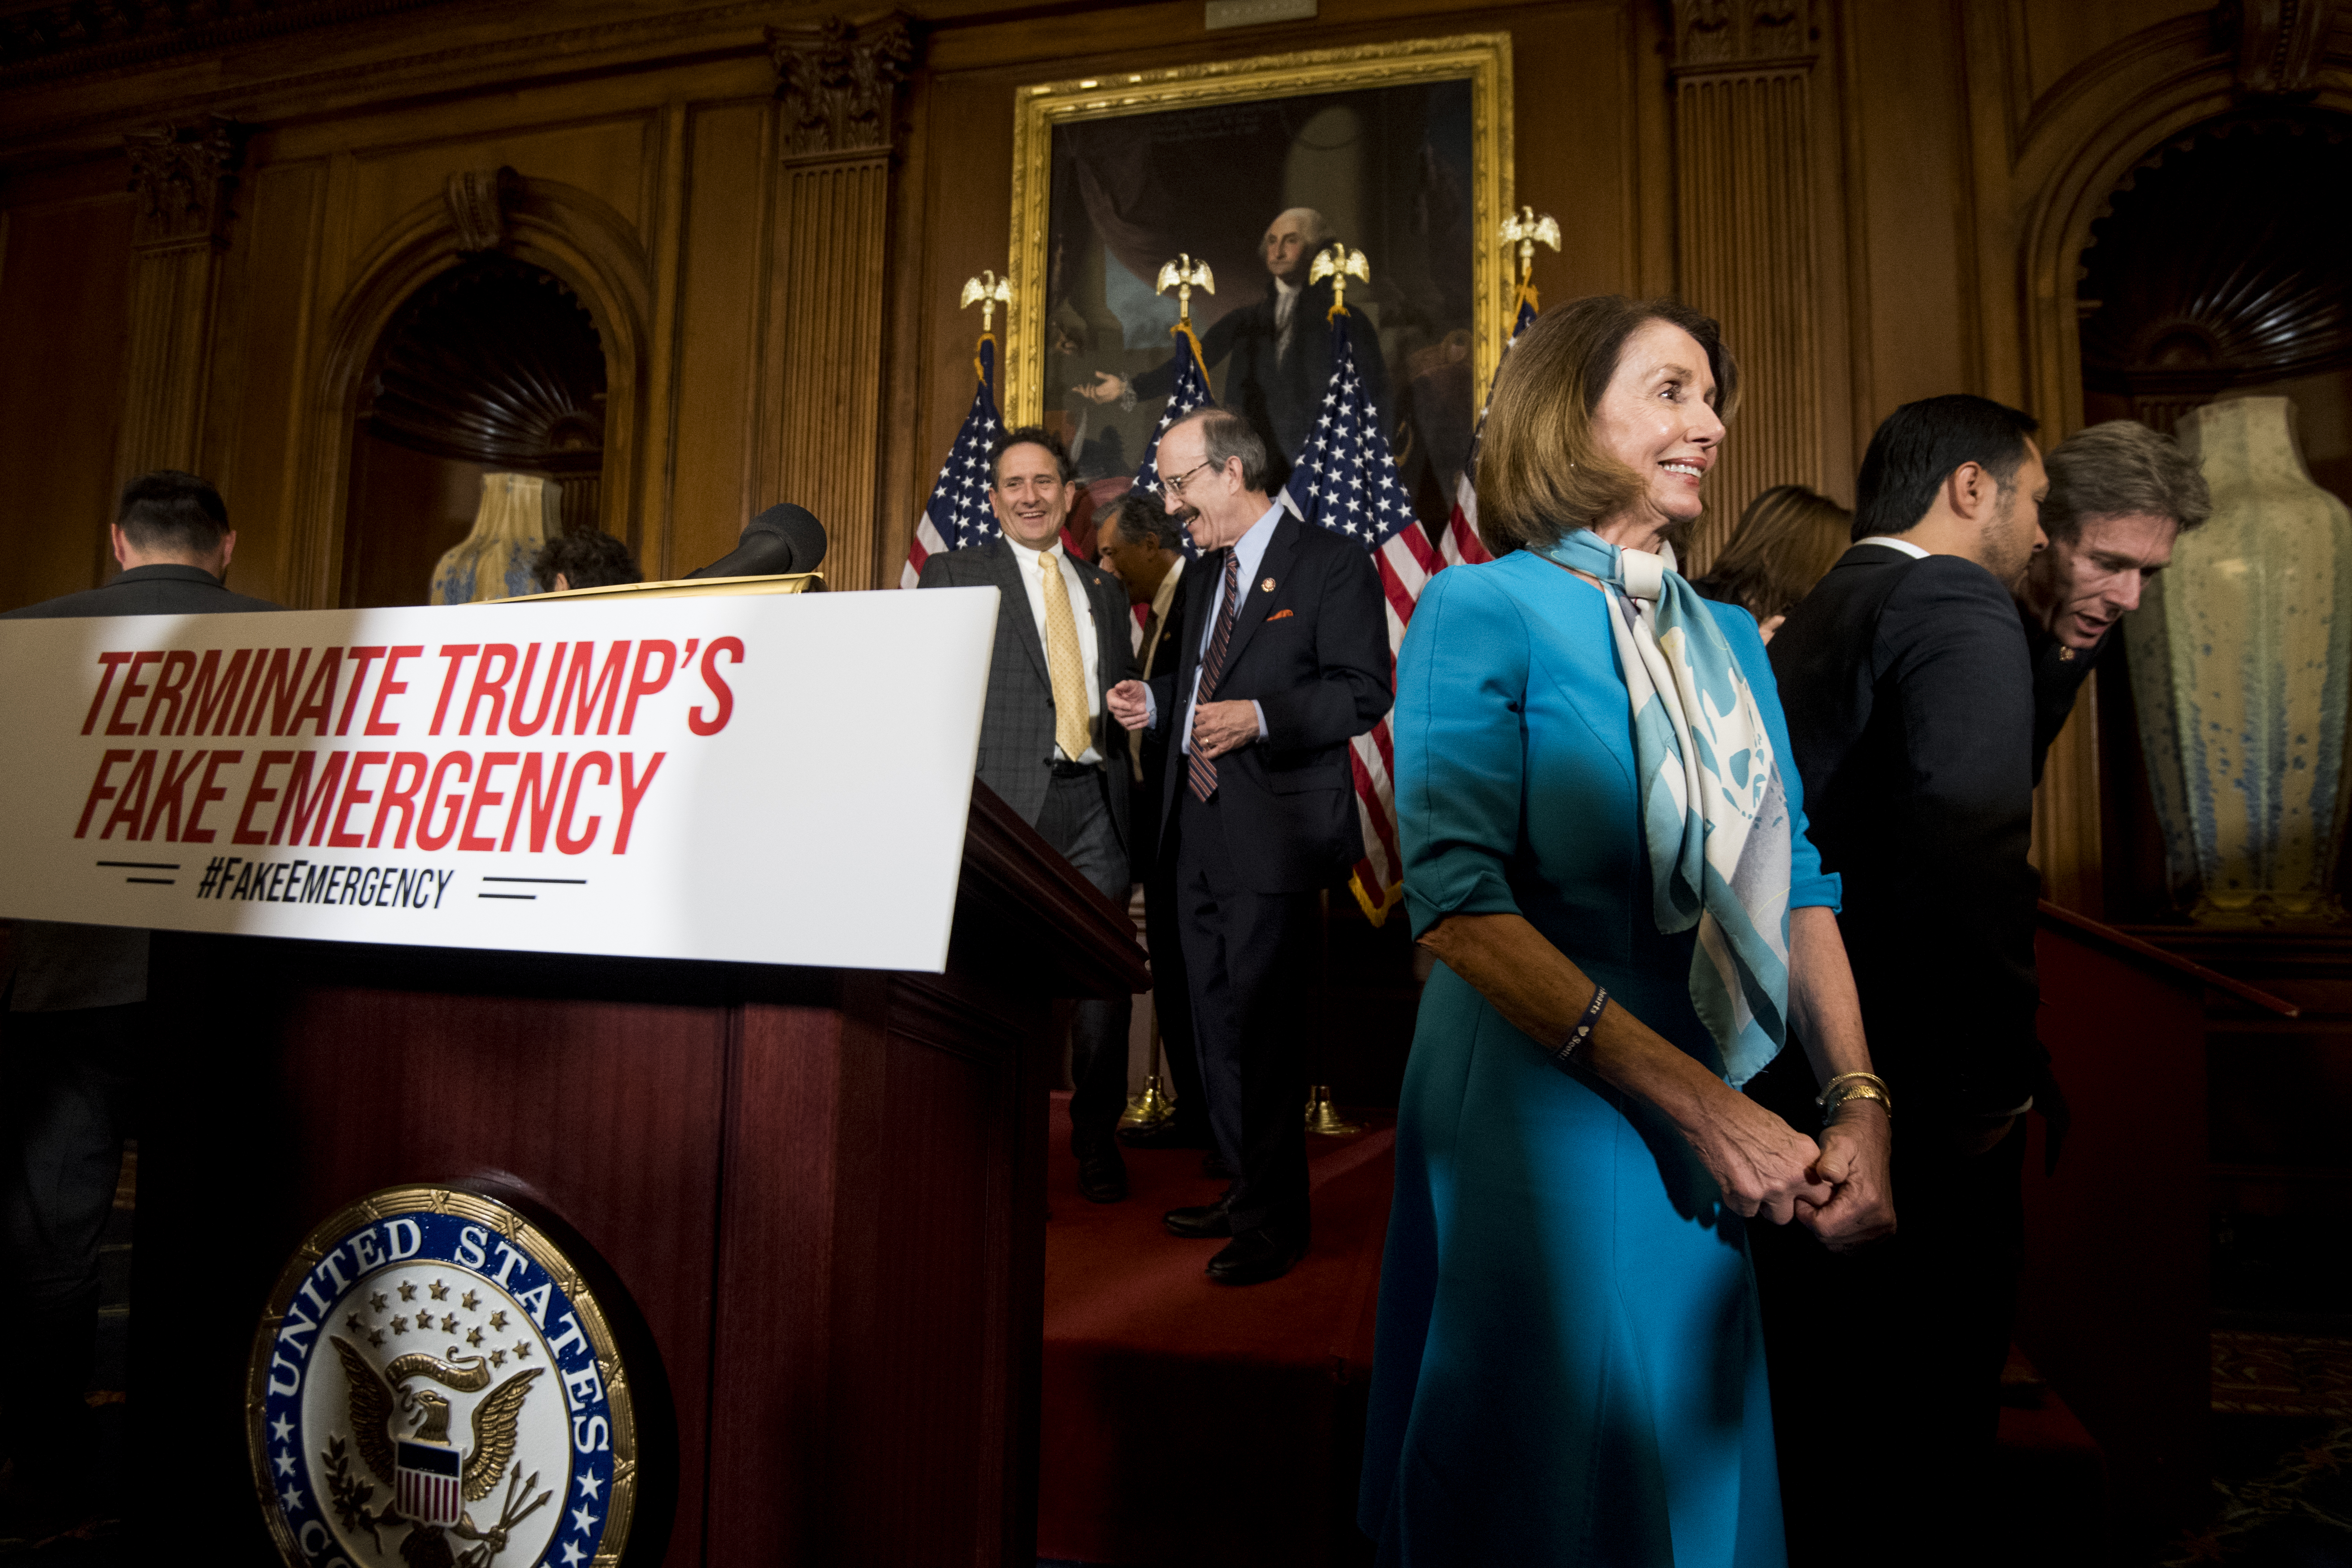 UNITED STATES - FEBRUARY 25: Speaker of the House Nancy Pelosi, D-Calif., leaves the podium after the House Democrats' news conference on the Privileged Resolution to Terminate President Trump's Emergency Declaration on Monday, Feb. 25, 2019. (Photo By Bill Clark/CQ Roll Call)